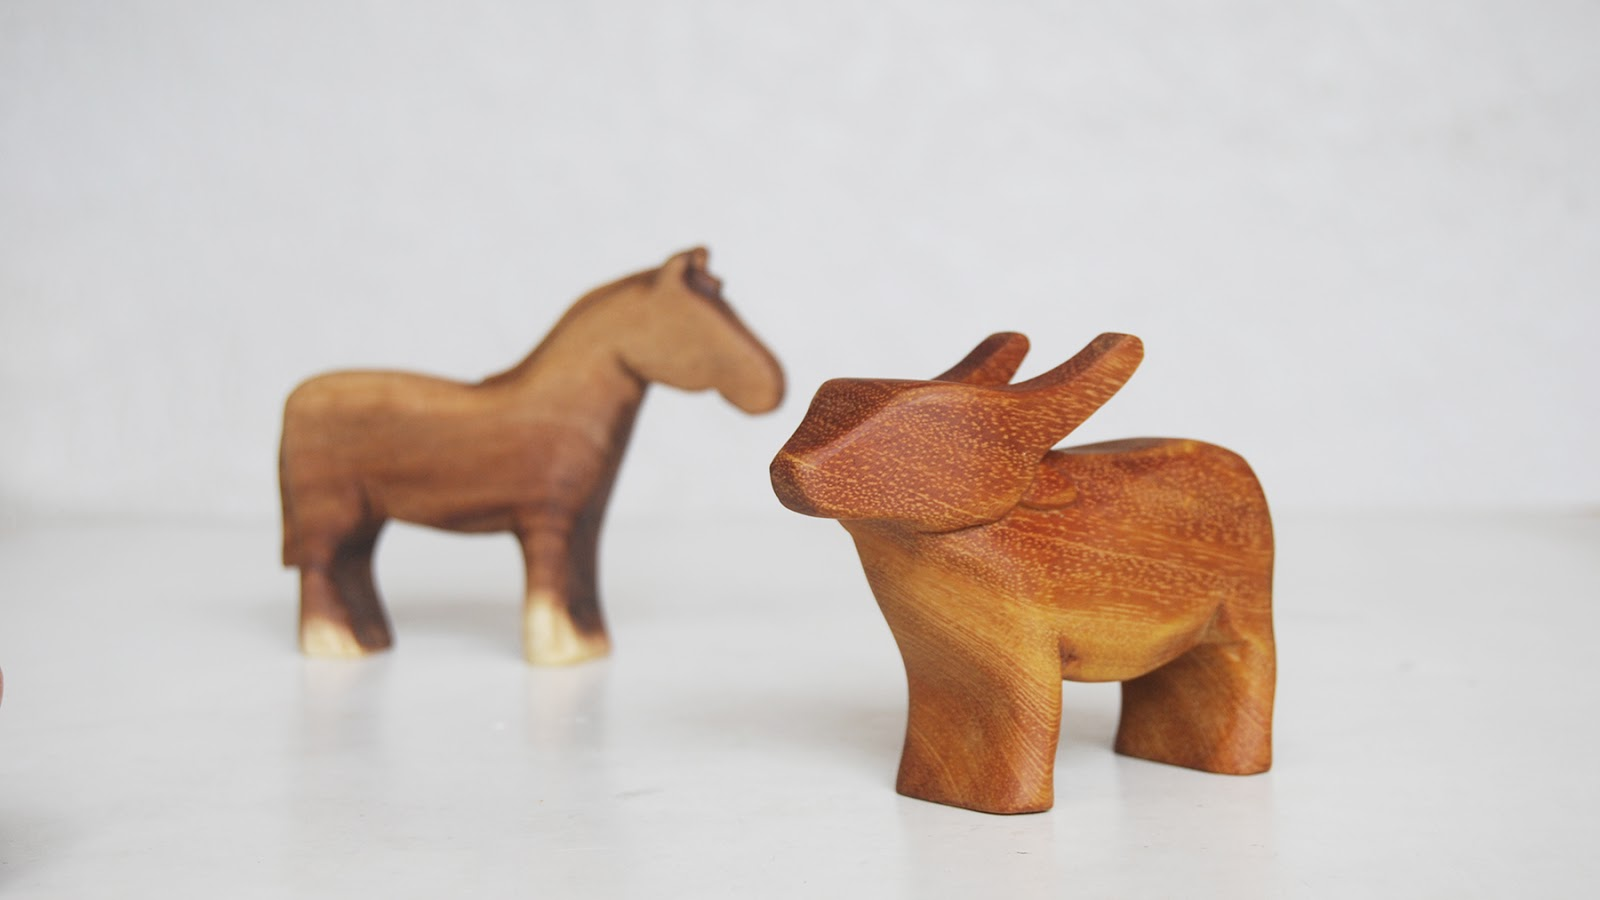 Carving Toys 103